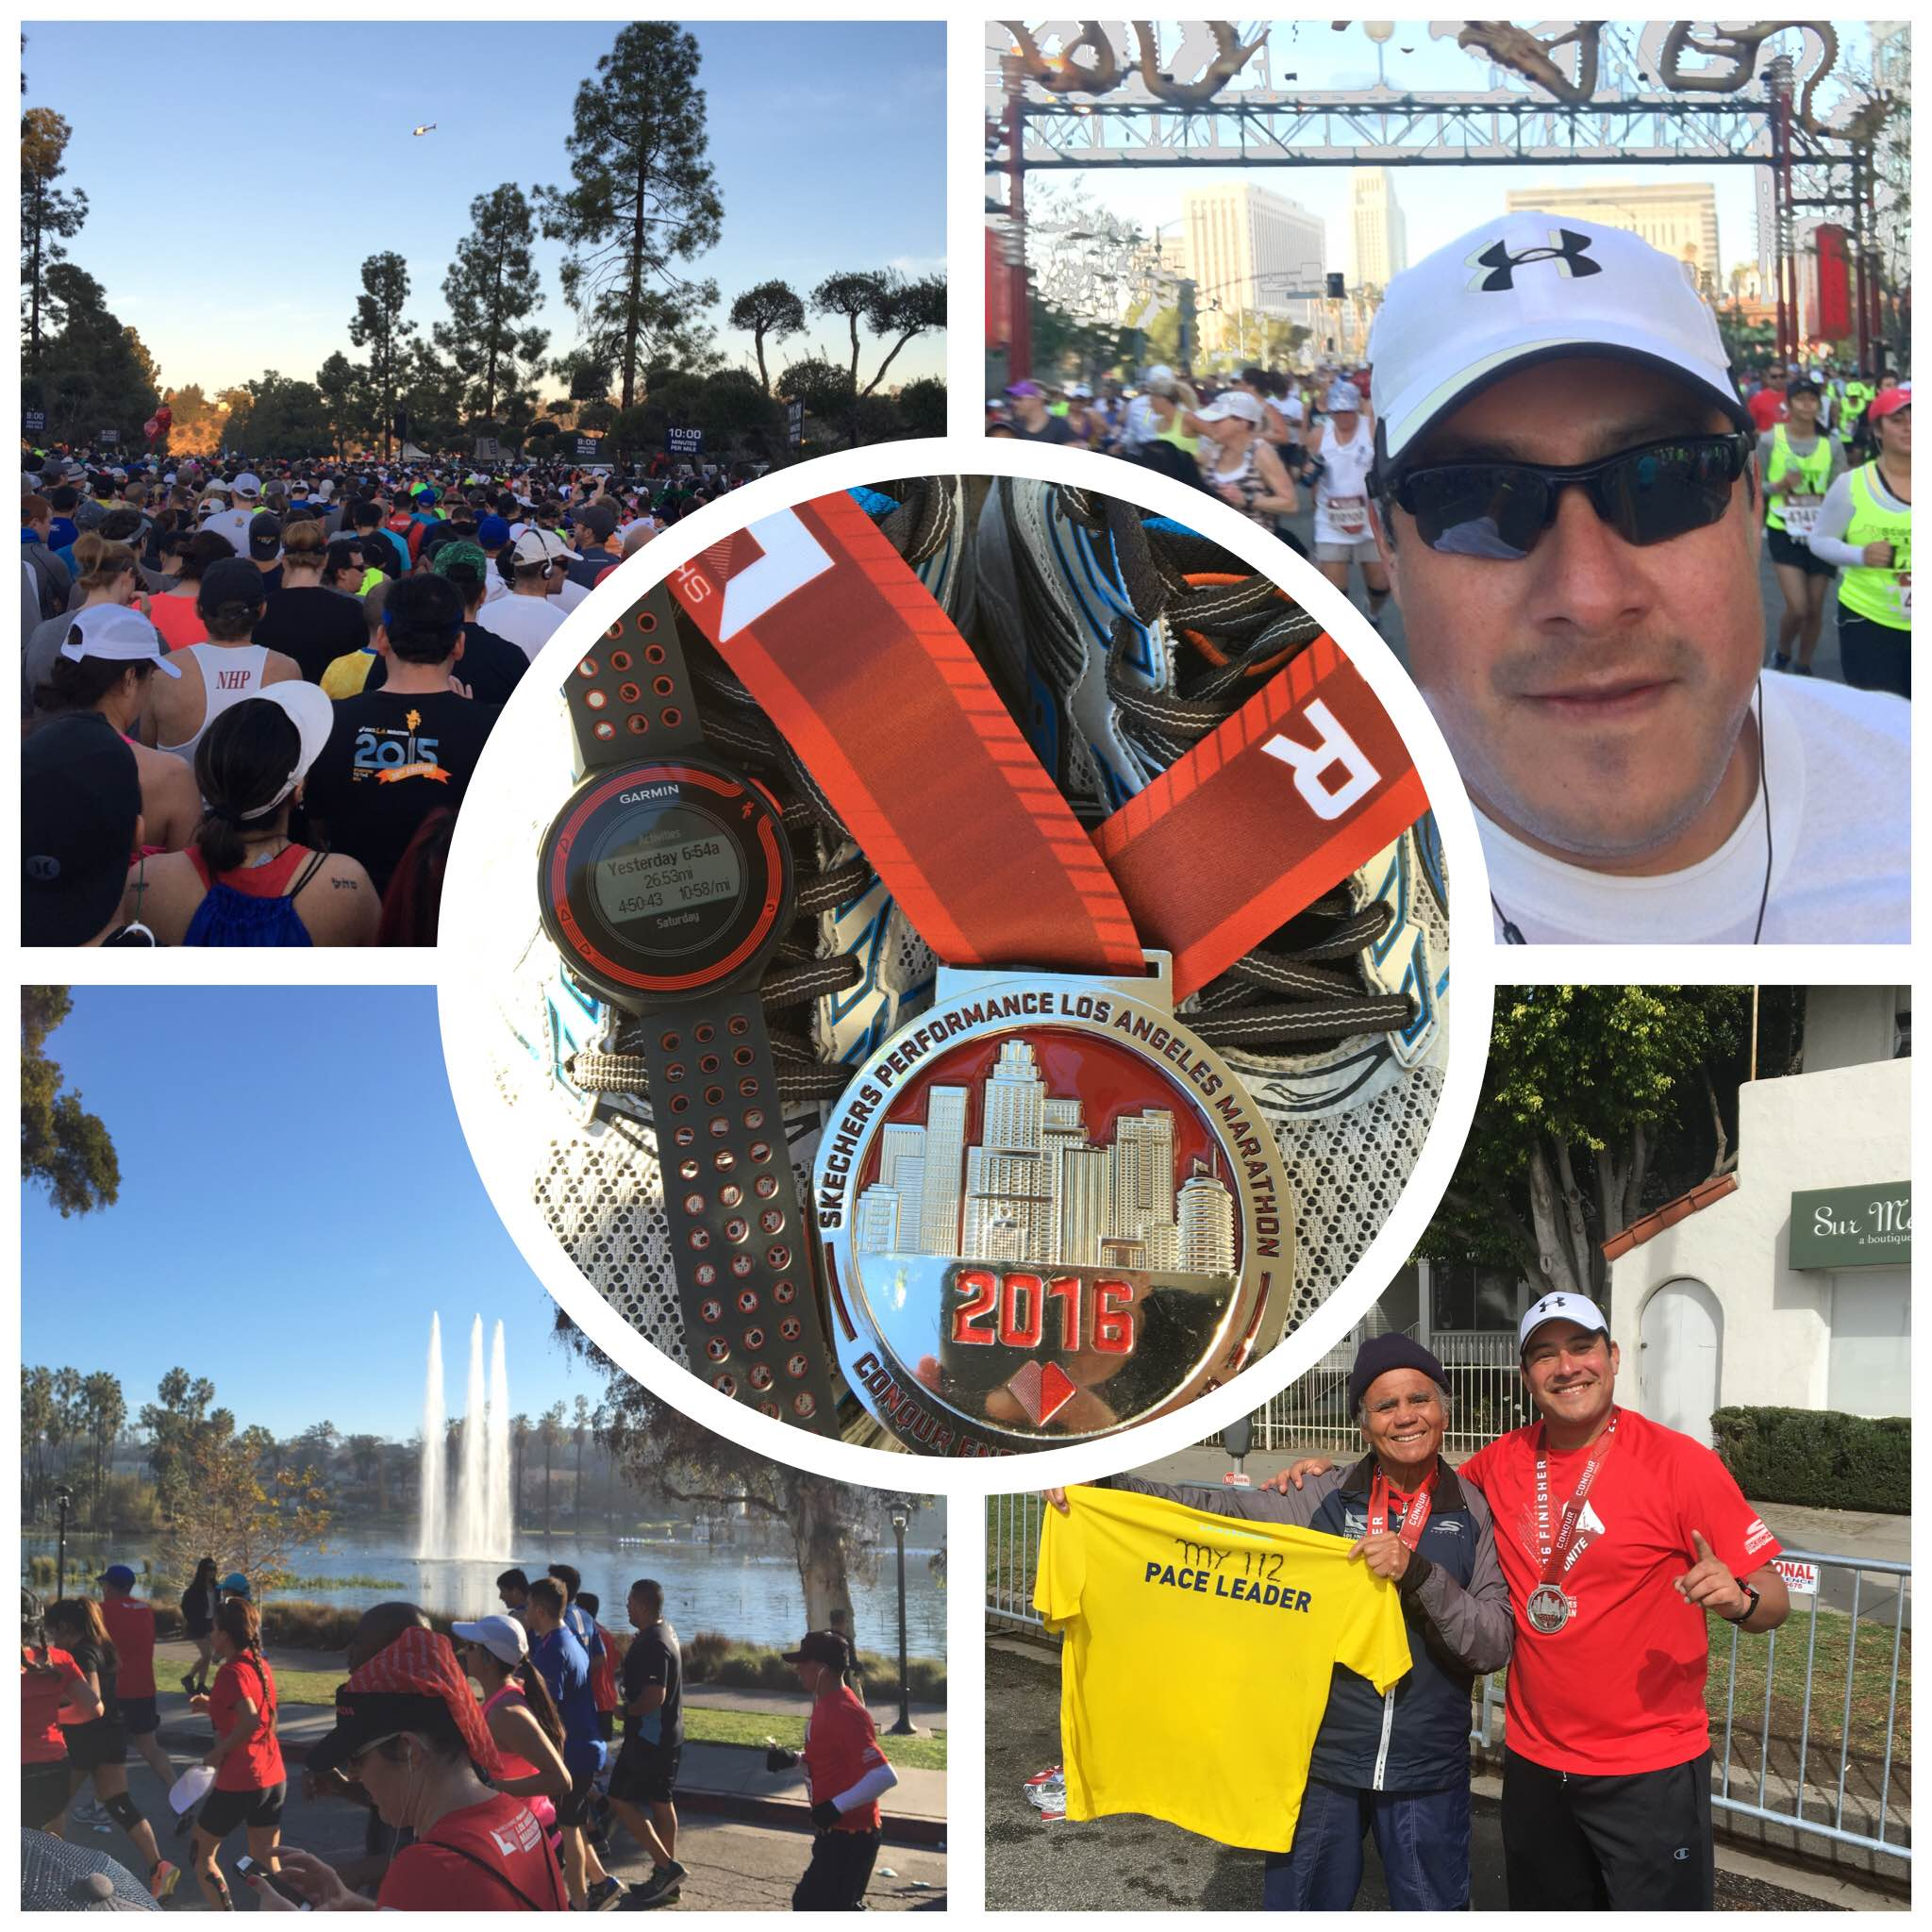 What an amazing Valentine's Day Marathon! So many great stories such as my NEW friend Mr. Delphino who completed is 112th Marathon at the young age of 69! (Lower Right Image)